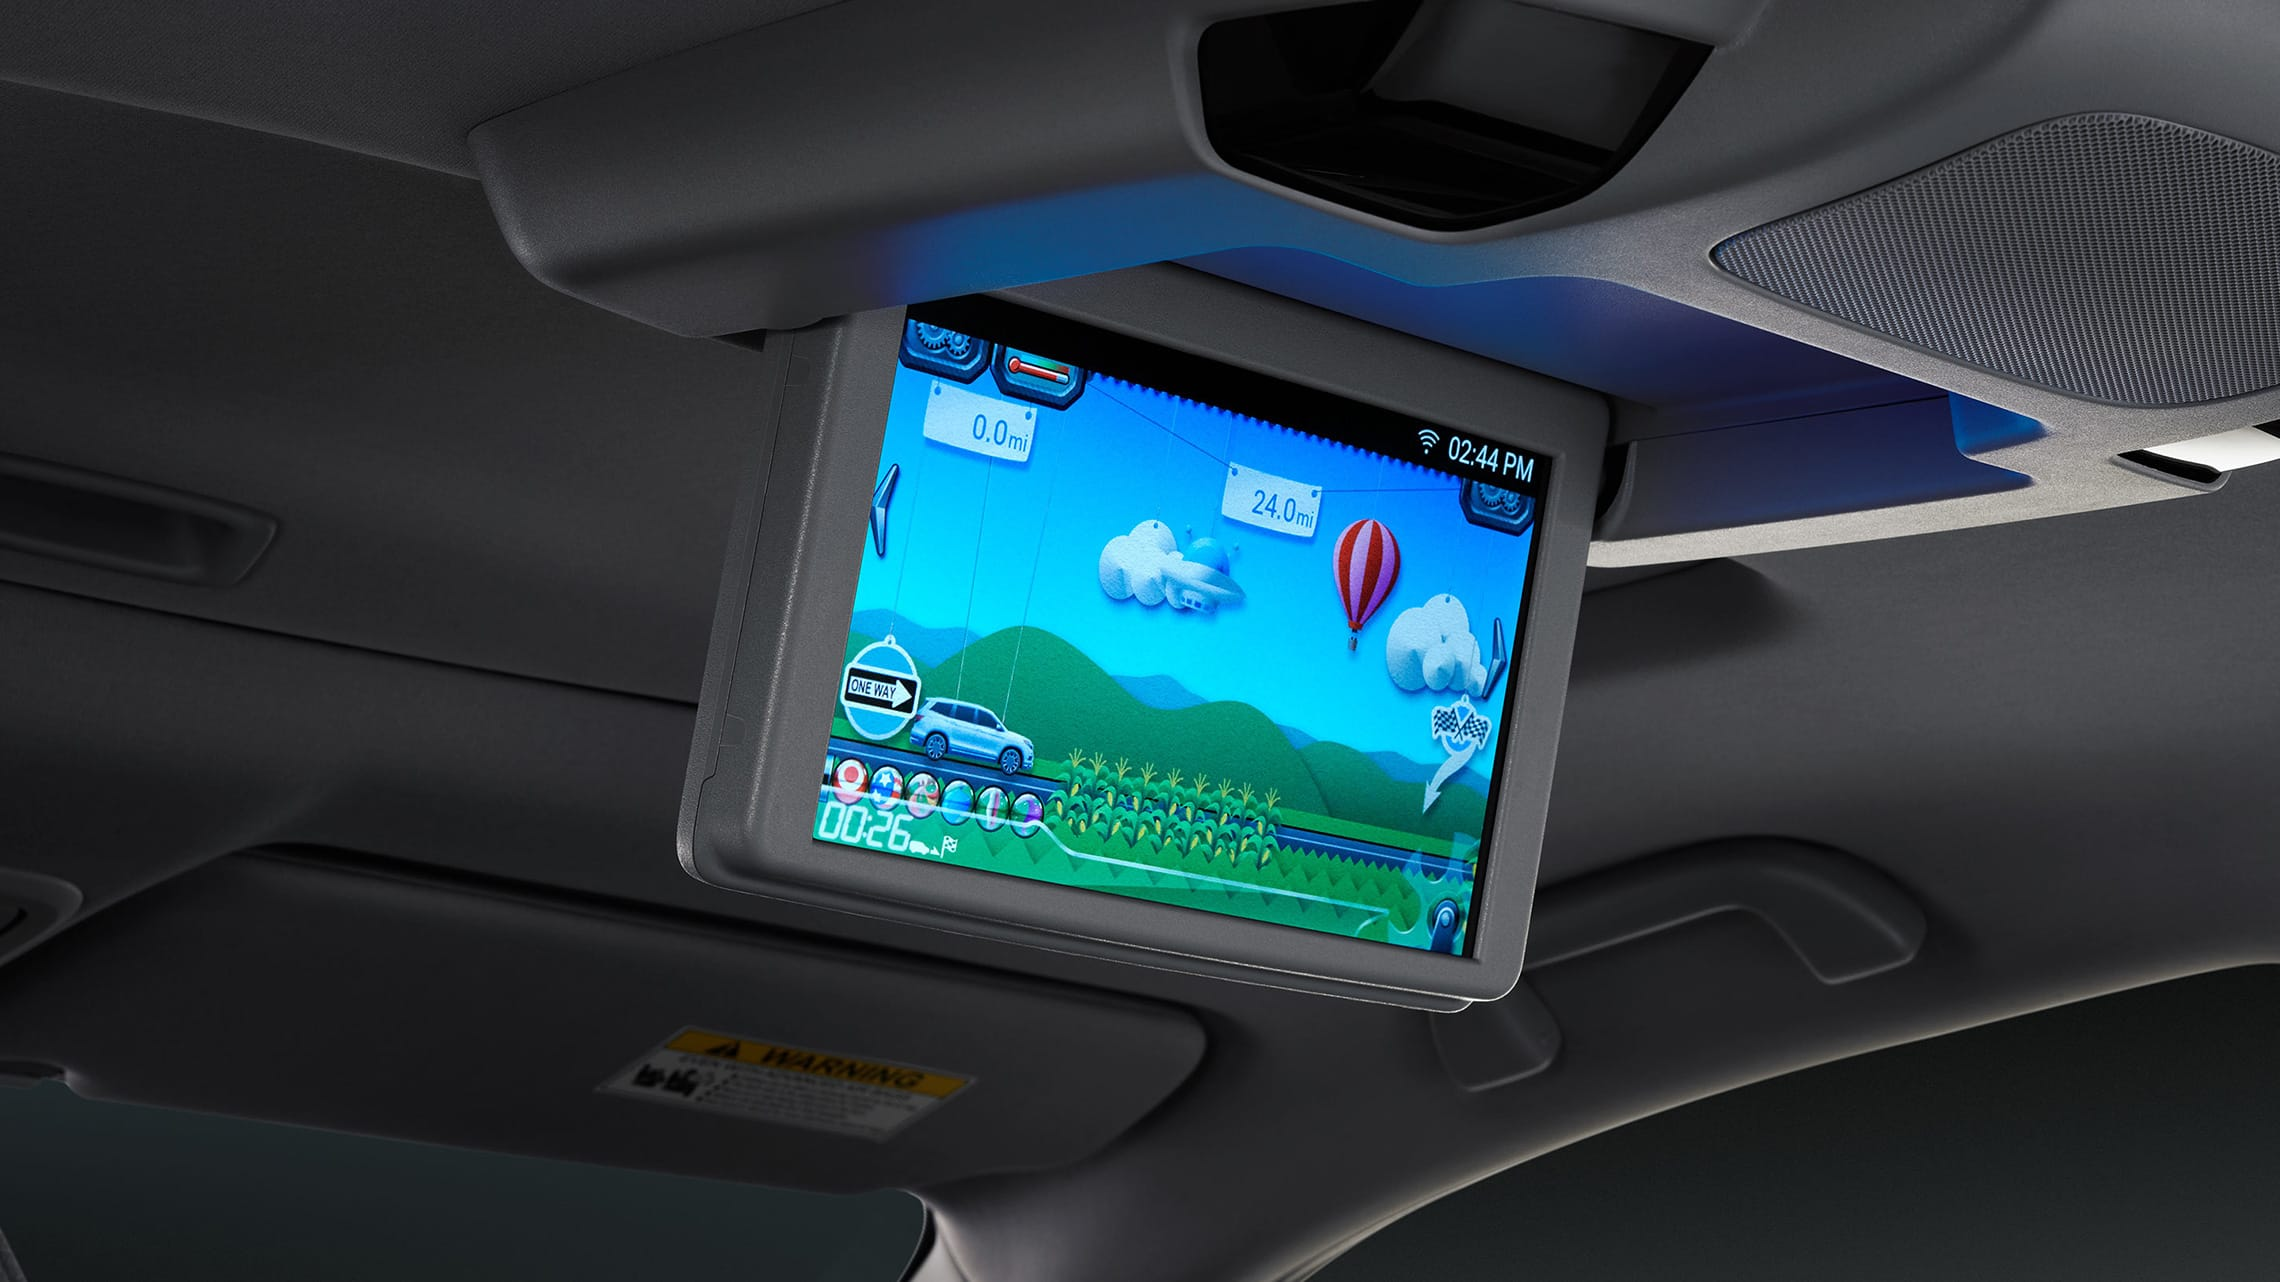 10.2-inch monitor for Advanced Rear Entertainment System detail display in 2021 Honda Pilot Elite with Gray Leather interior.